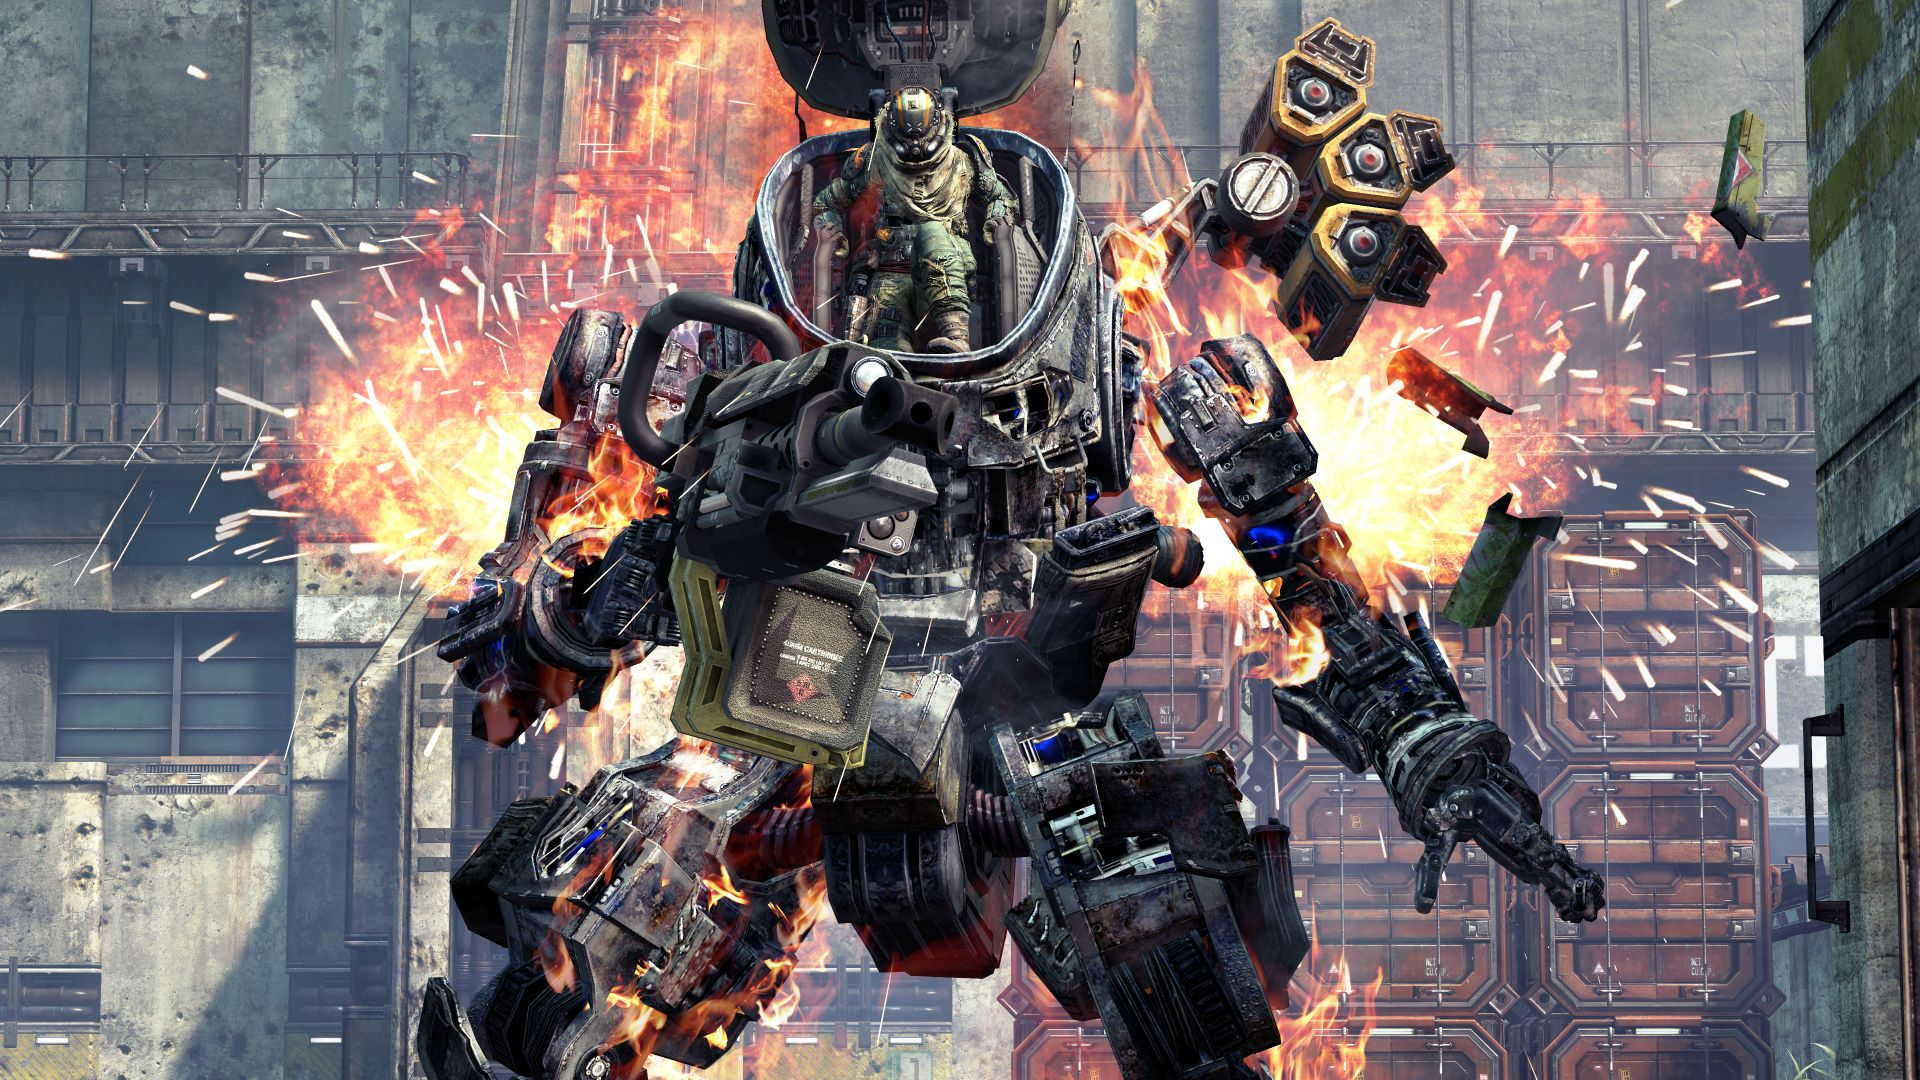 Titanfall – this is not an Xbox 360 screenshot, there are no Xbox 360 screenshots